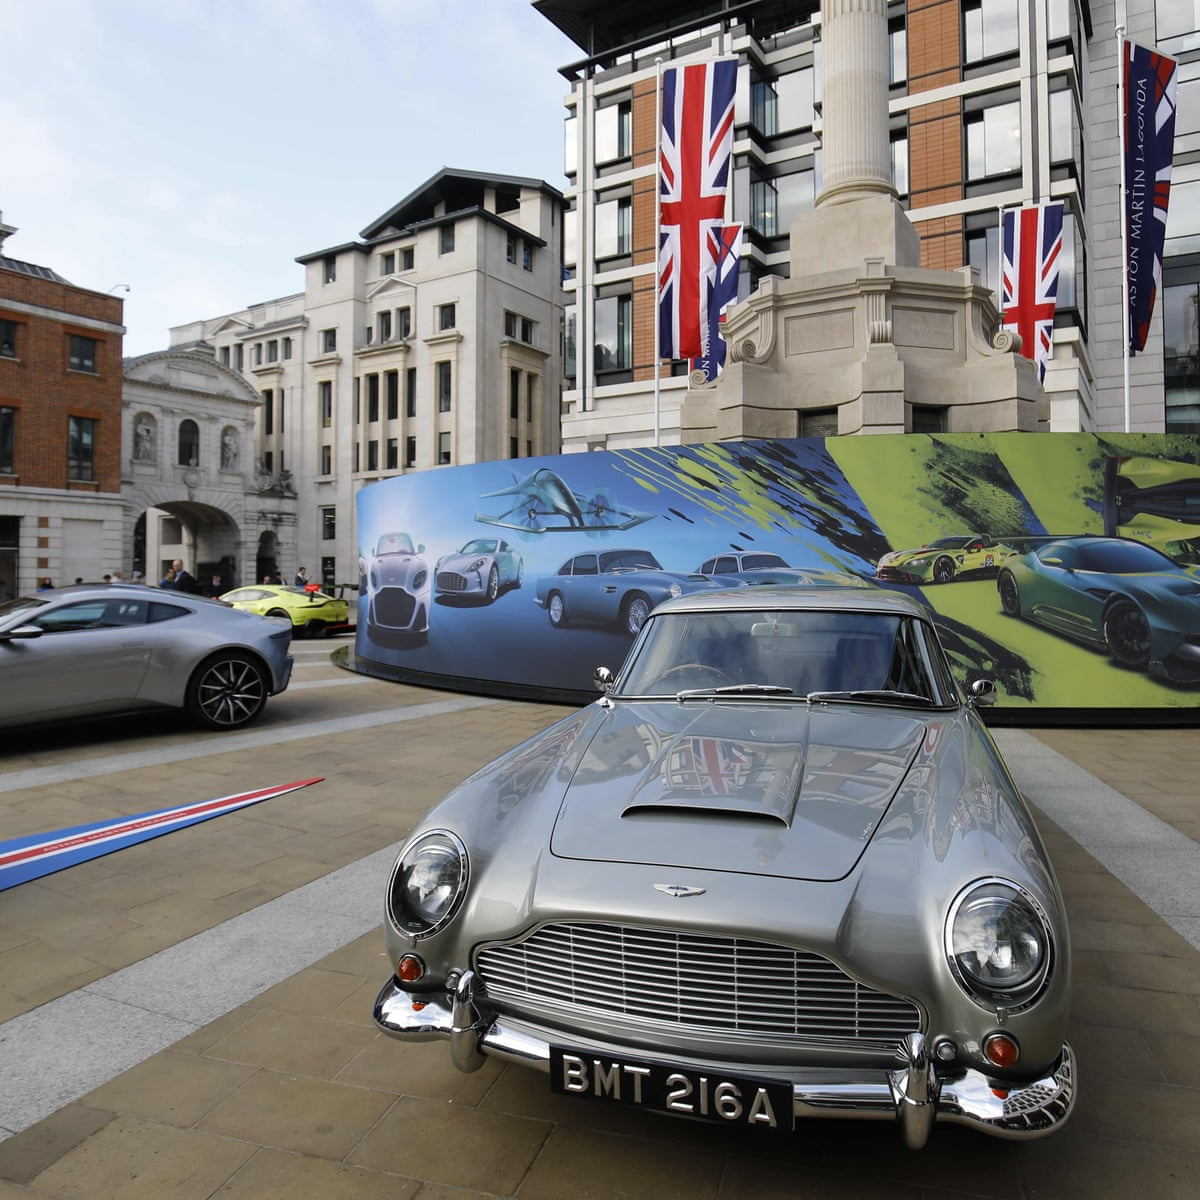 Aston Martin Ipo Disappoints As Luxury Carmaker S Value Falls Aston Martin The Guardian